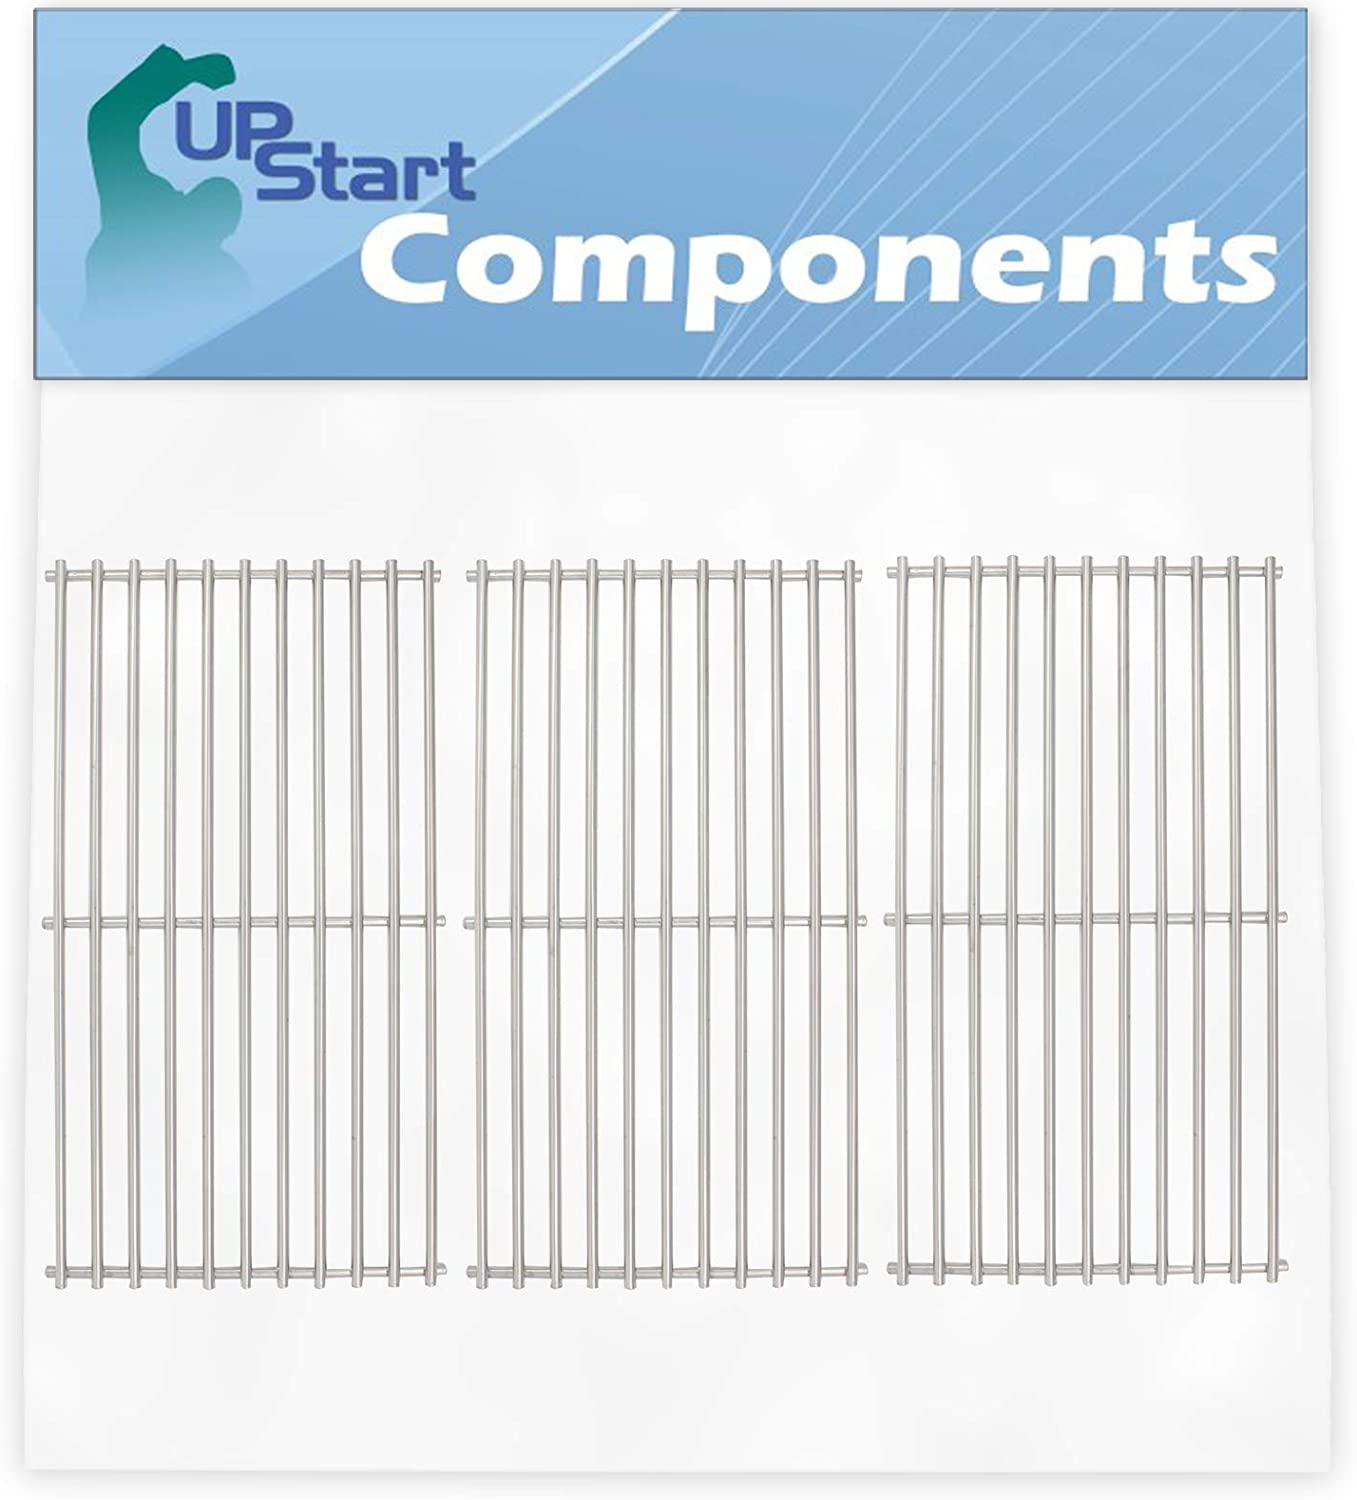 UpStart Components 毎日激安特売で 営業中です お得なキャンペーンを実施中 3-Pack BBQ Grill Grates Replacement Cooking P